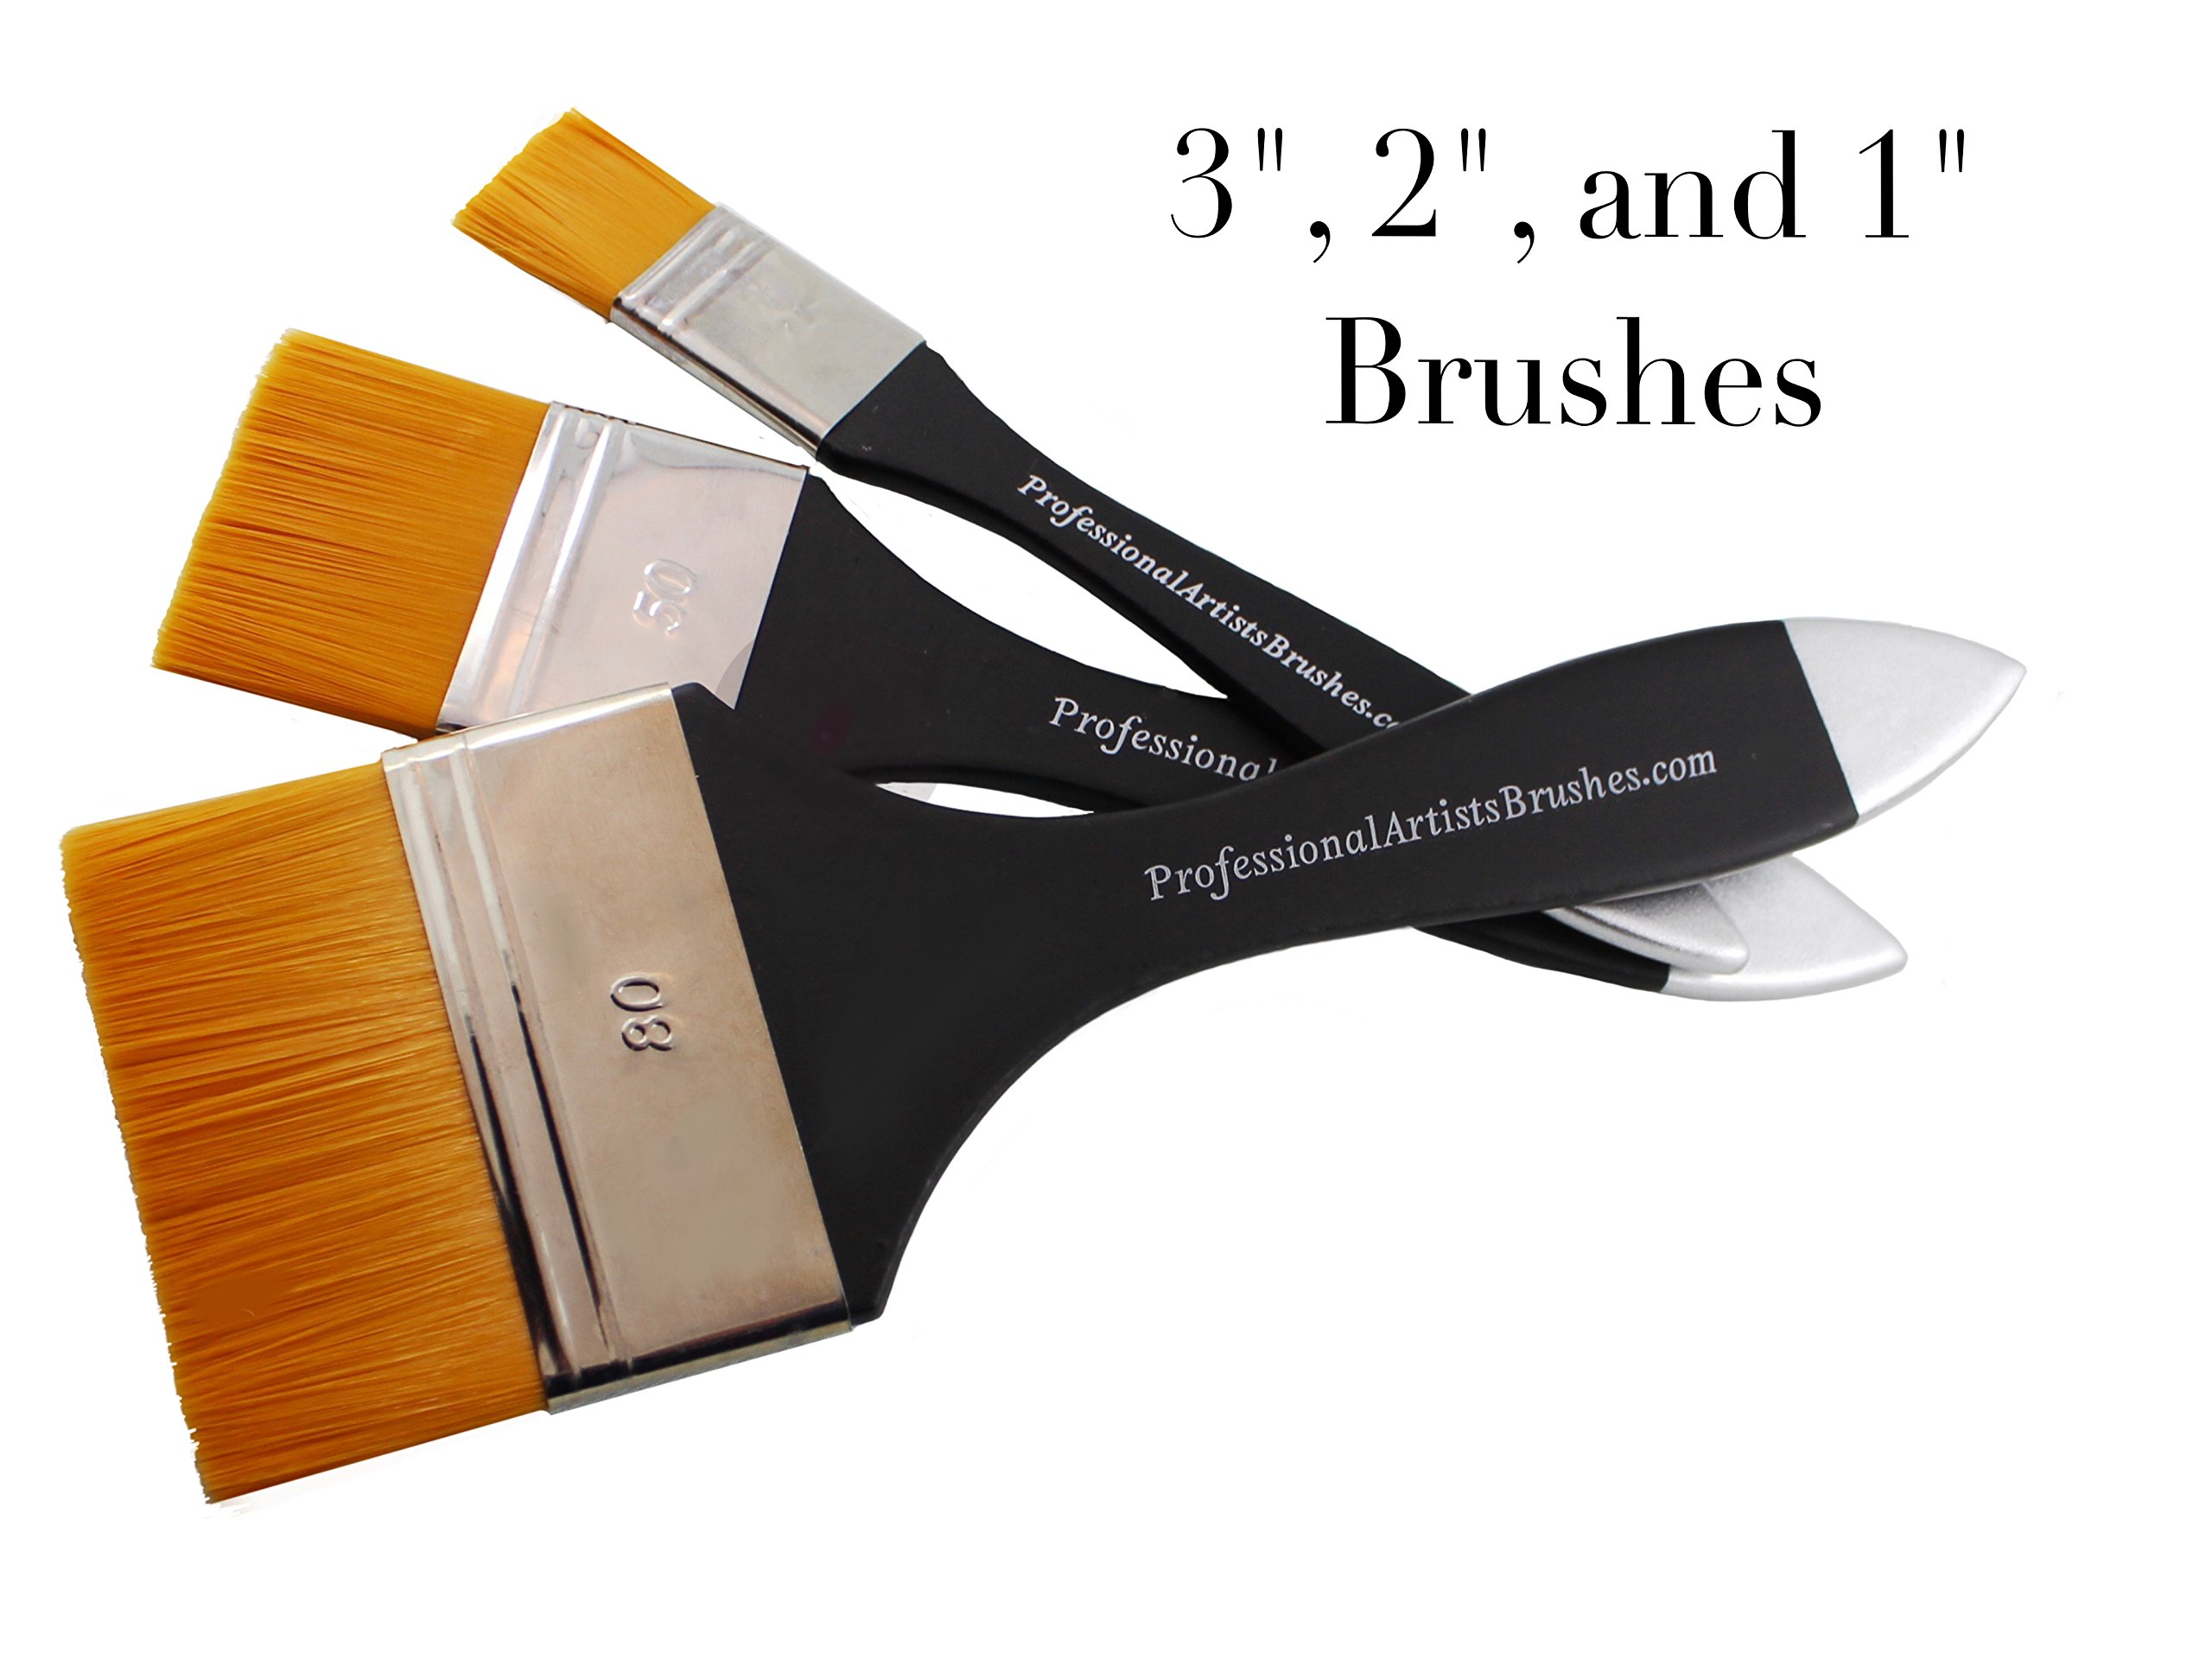 Flat Wash Brush Set for Acrylics, Watercolor and Oils. Paint Large Areas Quickly and Smoothly With Liquid Paint. Upgrade of Design and Quality in 2016. Will Not Shed Bristles